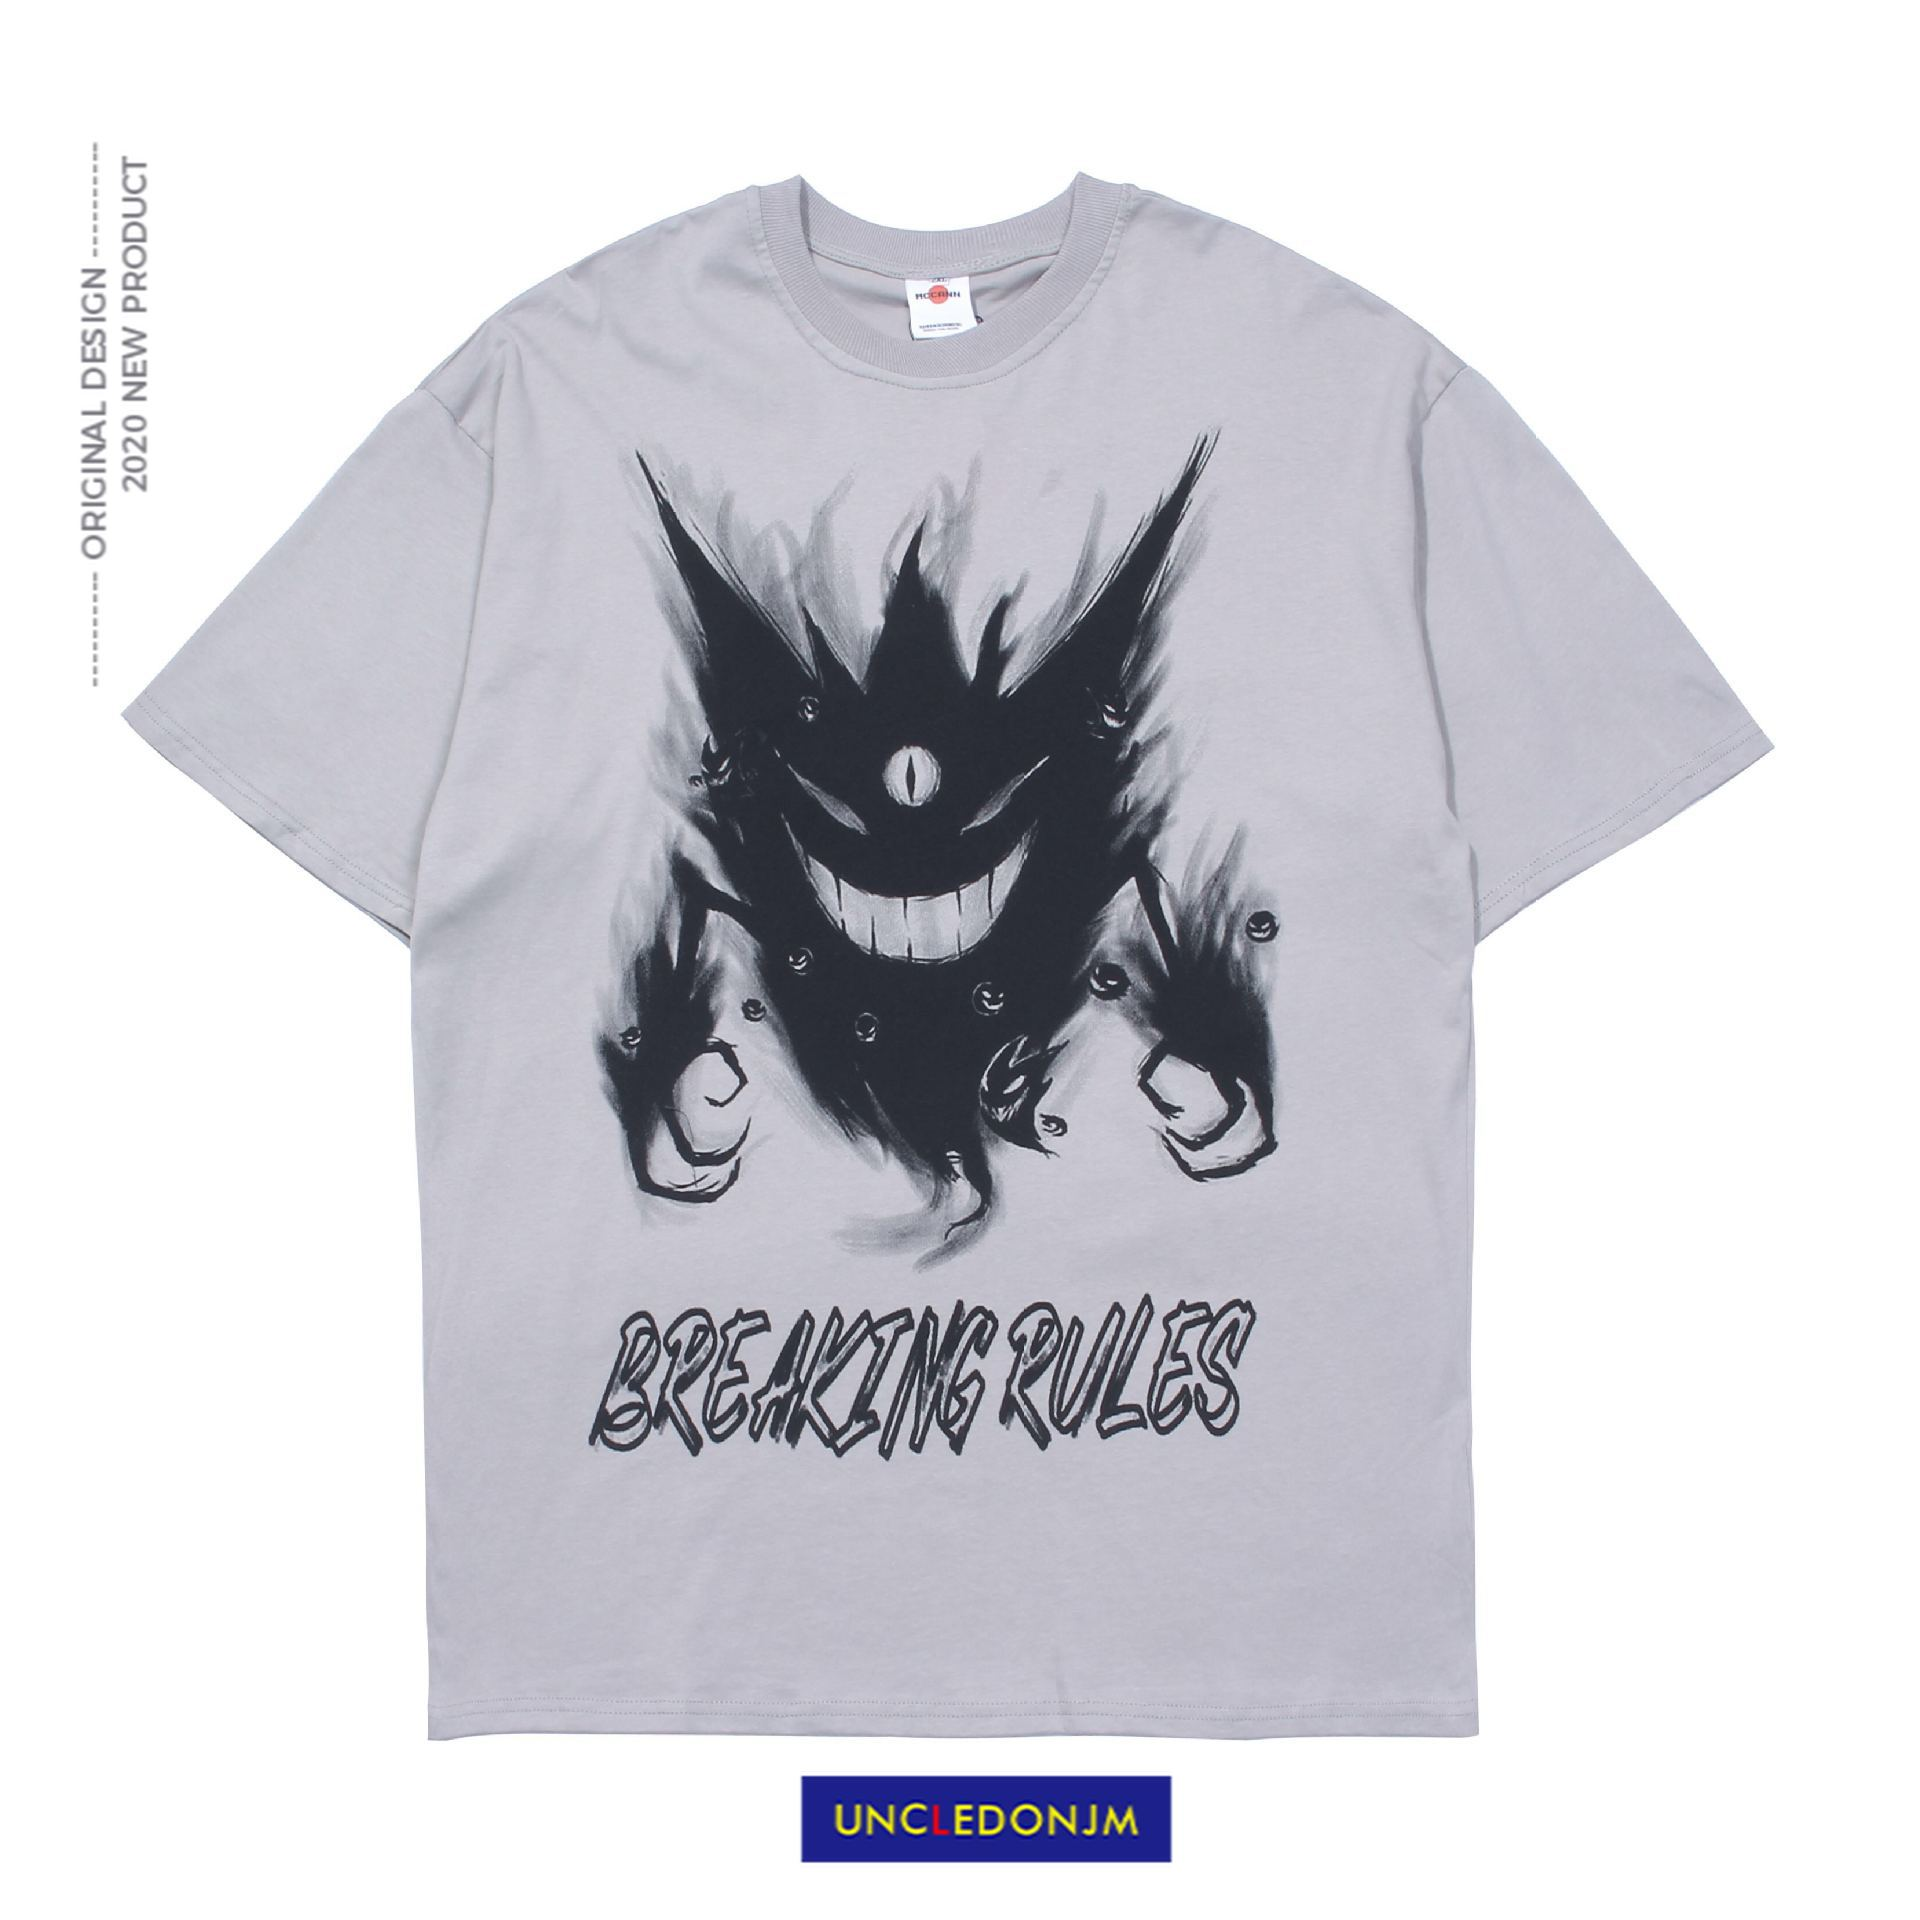 UNCLEDONJM Devil Ghost print Men <font><b>T</b></font> <font><b>shirt</b></font> O-neck Men <font><b>T</b></font> <font><b>shirt</b></font> Loose Hip hop Tops Tees Streetwear Short Sleeve <font><b>T</b></font> <font><b>shirts</b></font> <font><b>MC</b></font>-5053 image